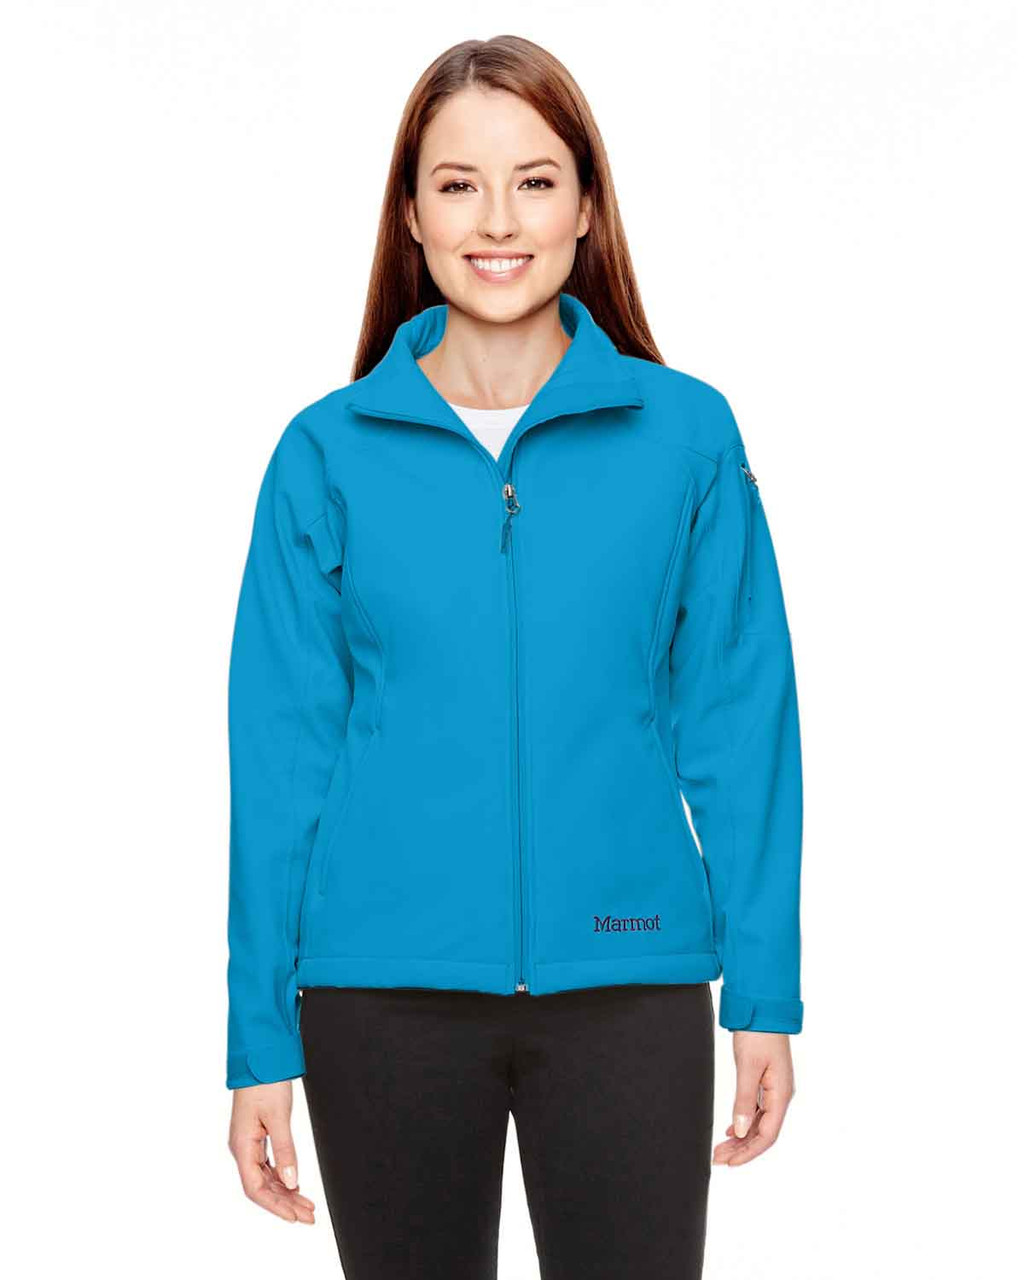 Dark Atomic - 85000 Marmot Ladies' Gravity Jacket | BlankClothing.ca